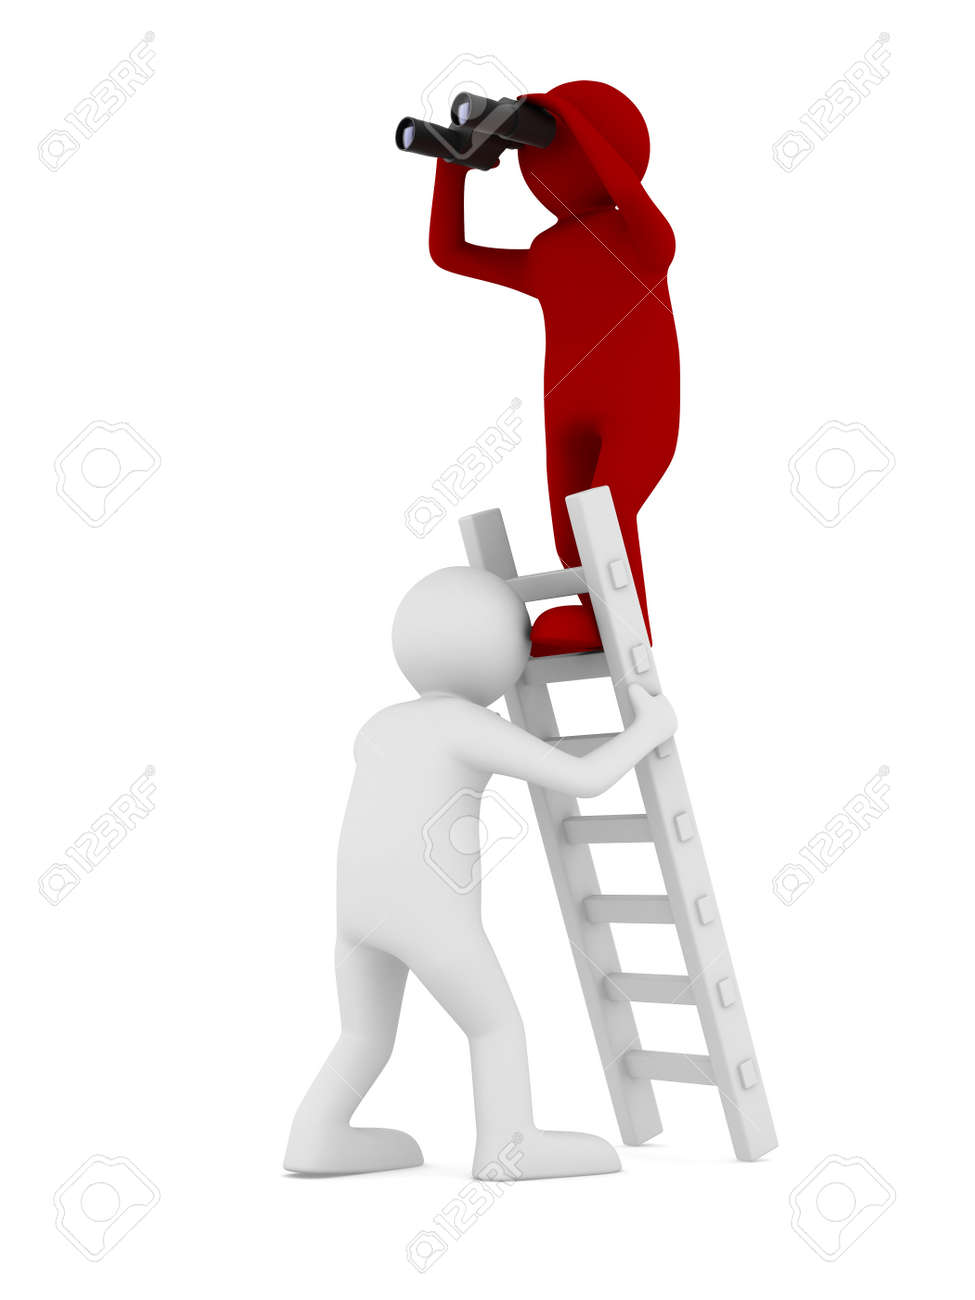 man on staircase. Isolated 3D image Stock Photo - 20847274